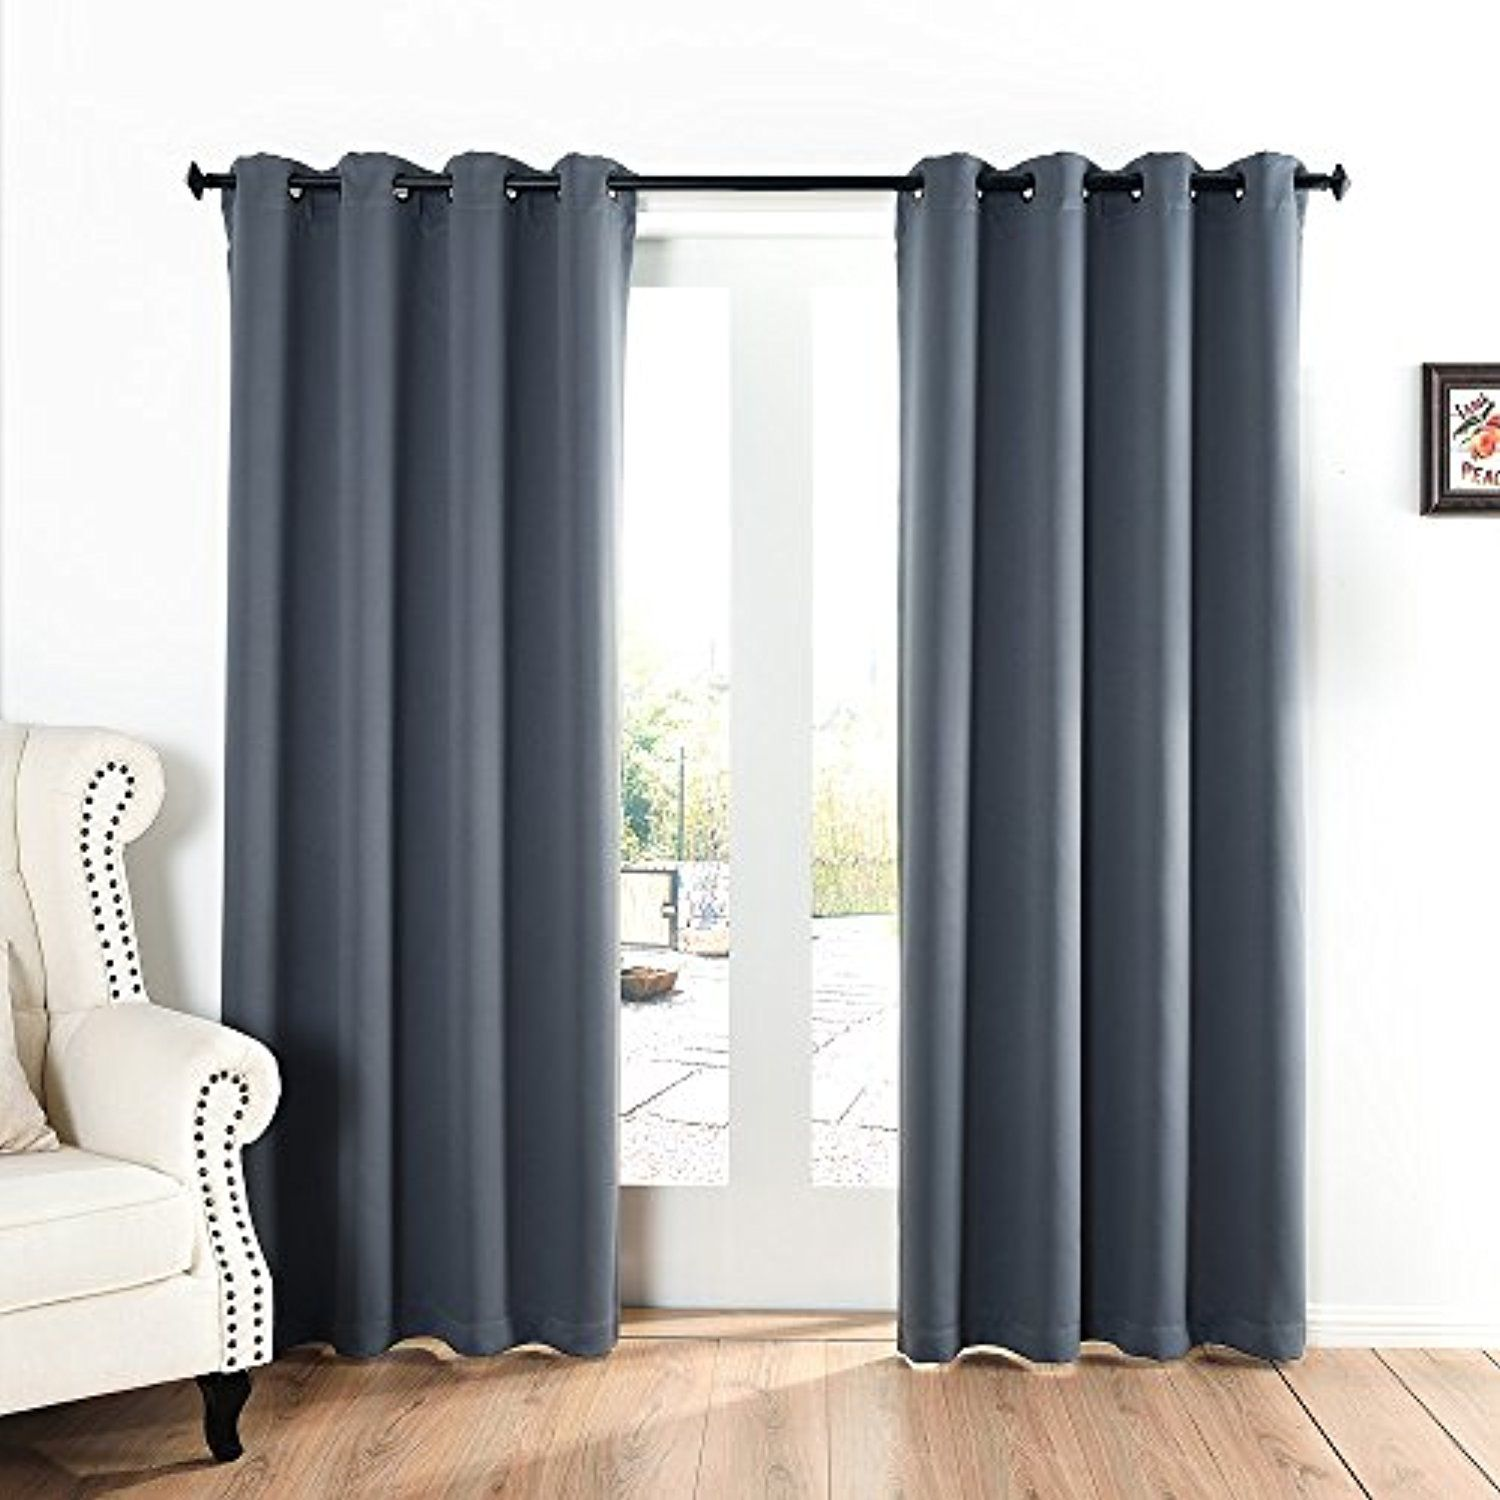 Blackout Curtains 52x84 Inch Dark Grey03 Set Of 2 Panels Silver Grommet Top Thermal I Blackout Eyelet Curtains Duck Egg Blue Living Room Duck Egg Blue Bedroom